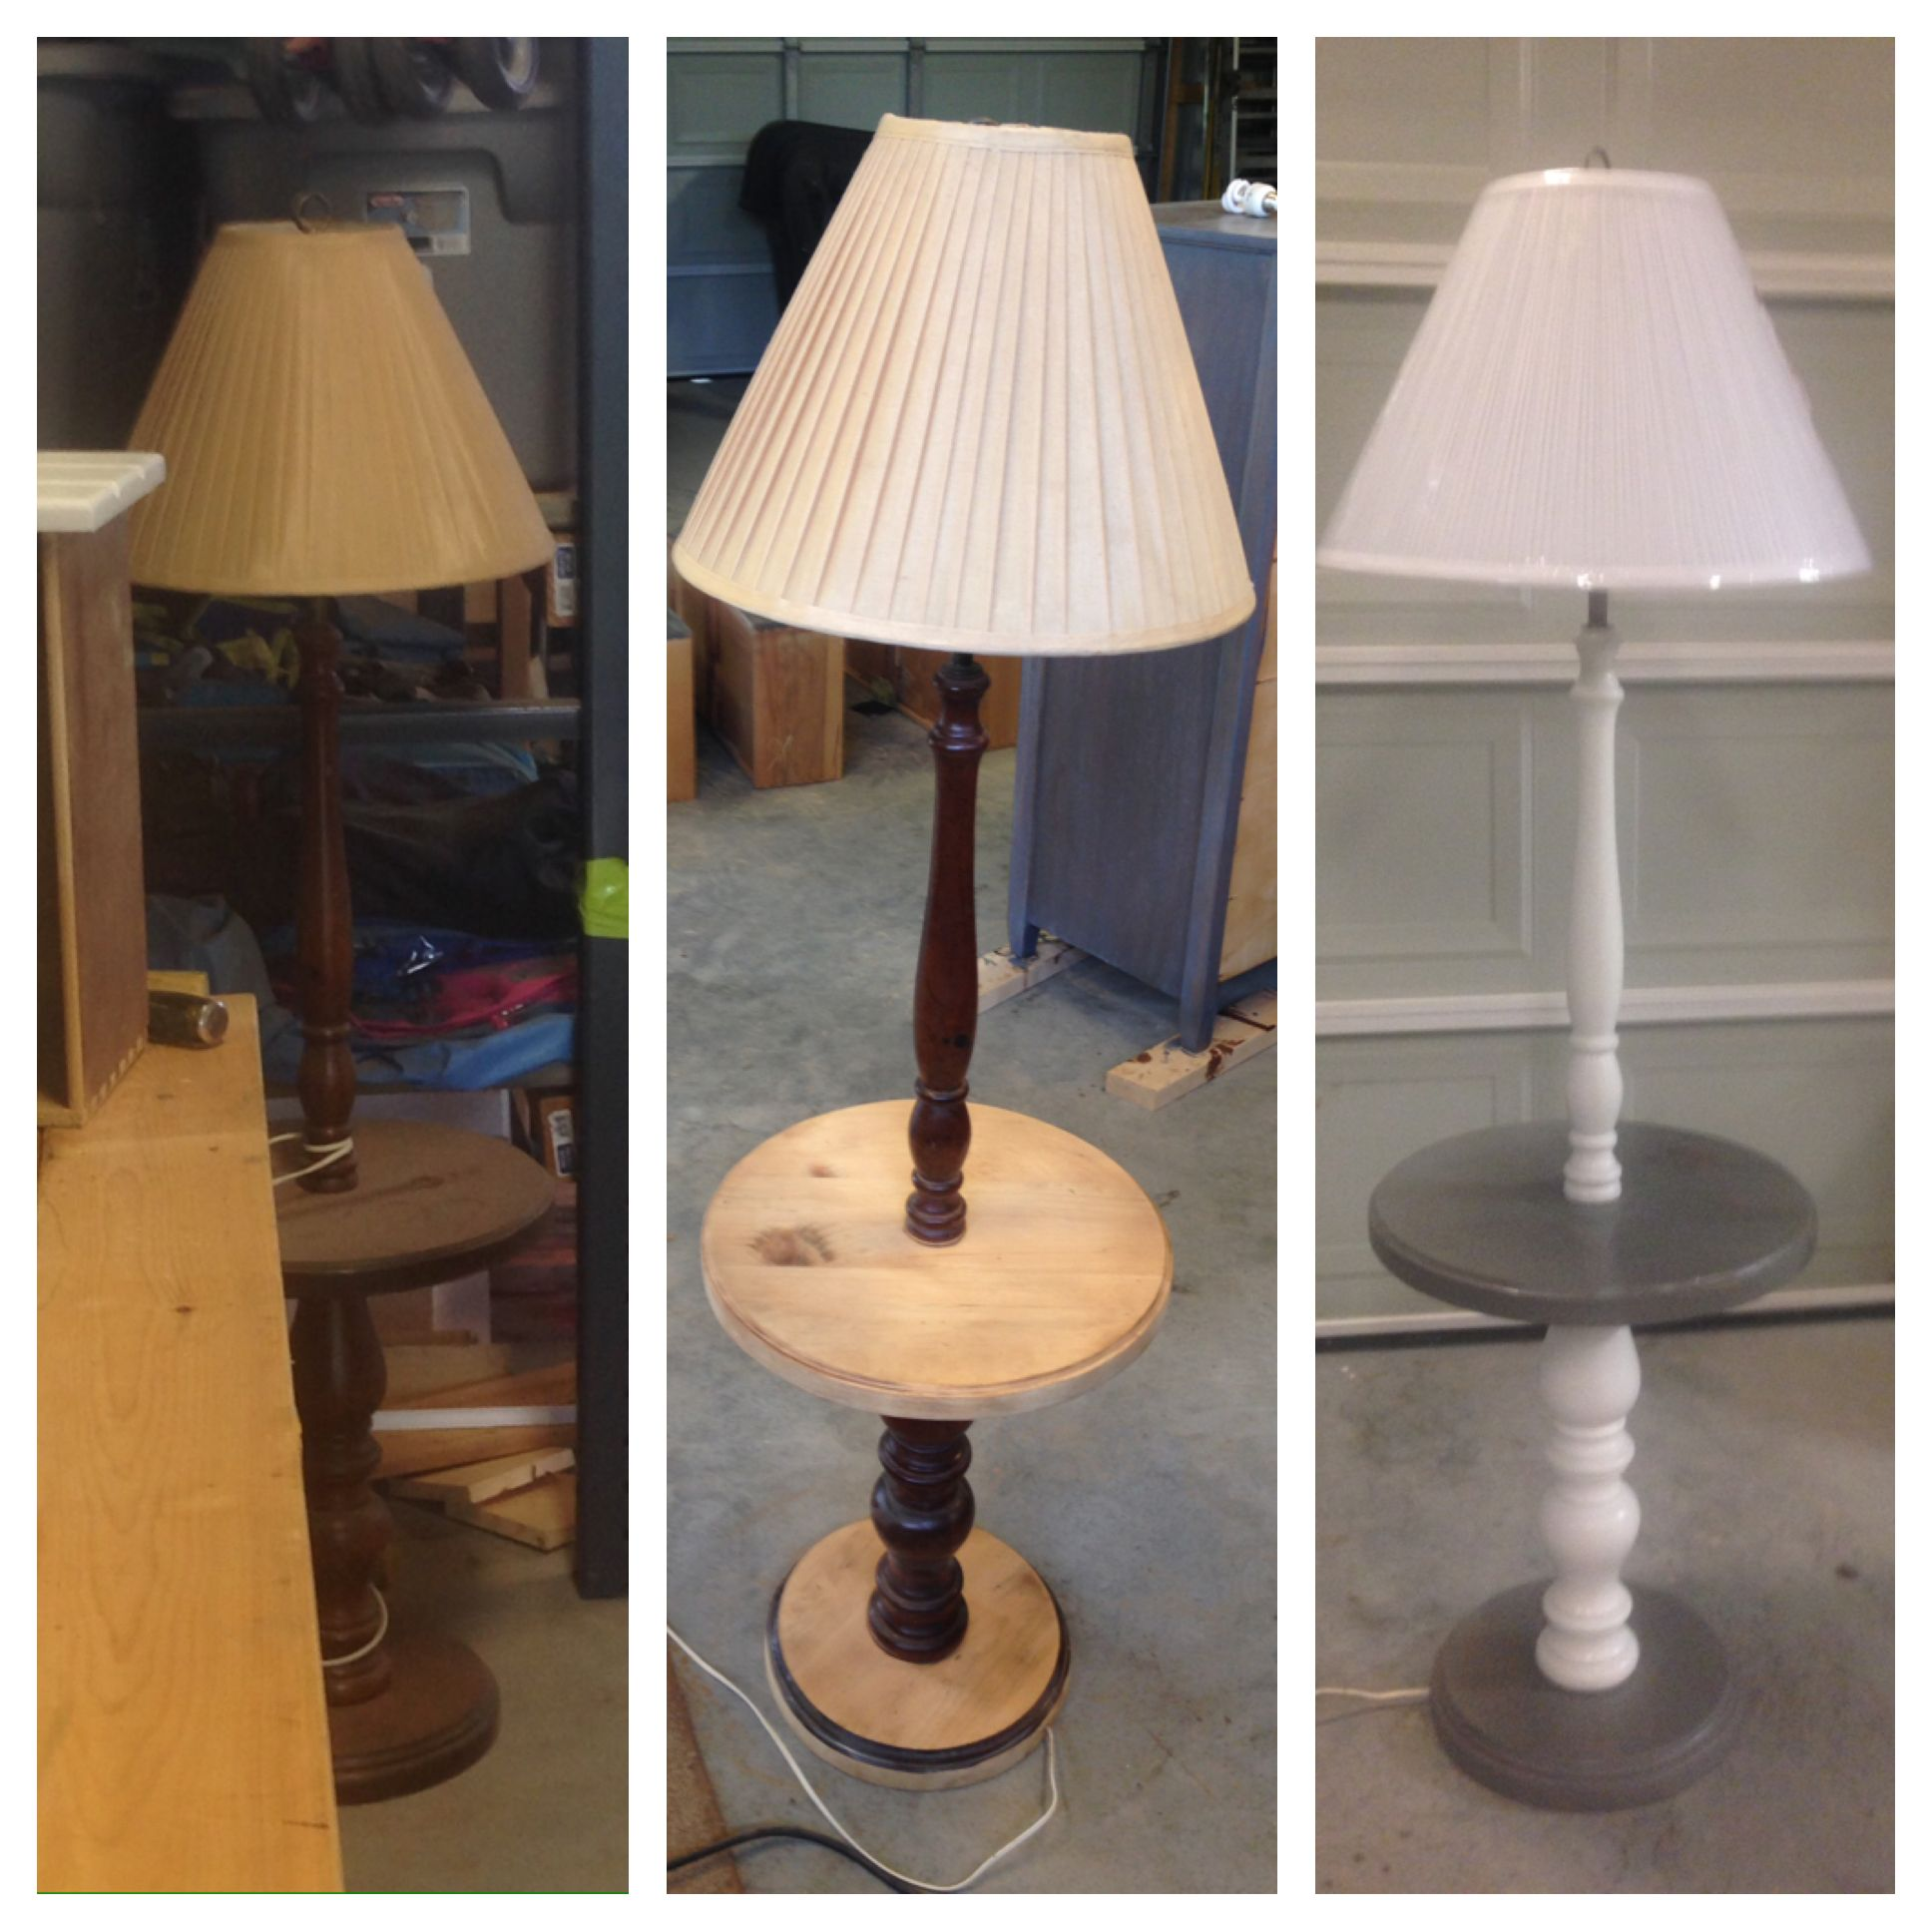 Driftwood Refinished End Table With Built In Lamp Lamp Floor